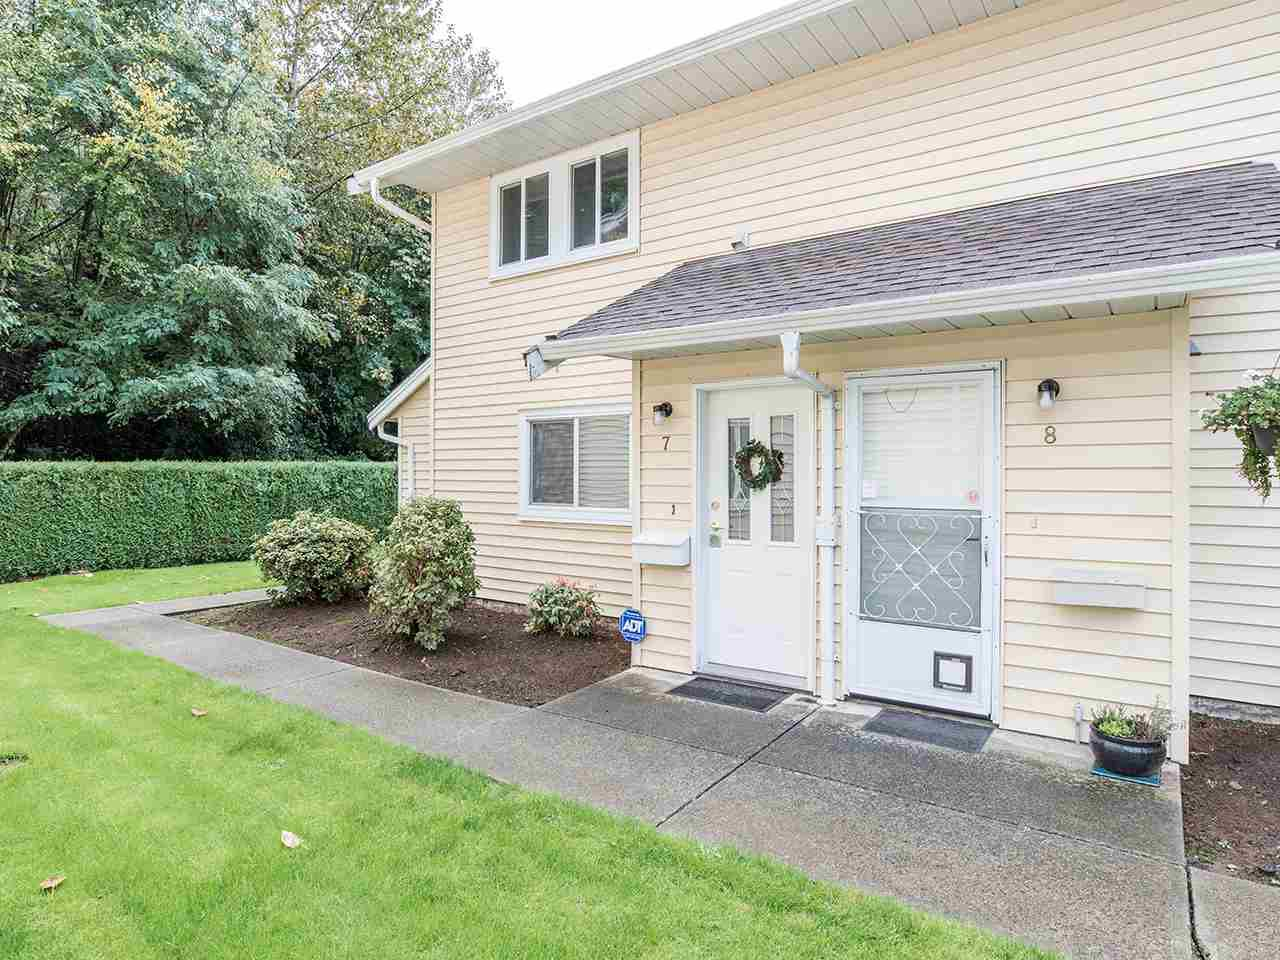 """Main Photo: 7 32286 7 Avenue in Mission: Mission BC Townhouse for sale in """"Luther Place"""" : MLS®# R2508452"""